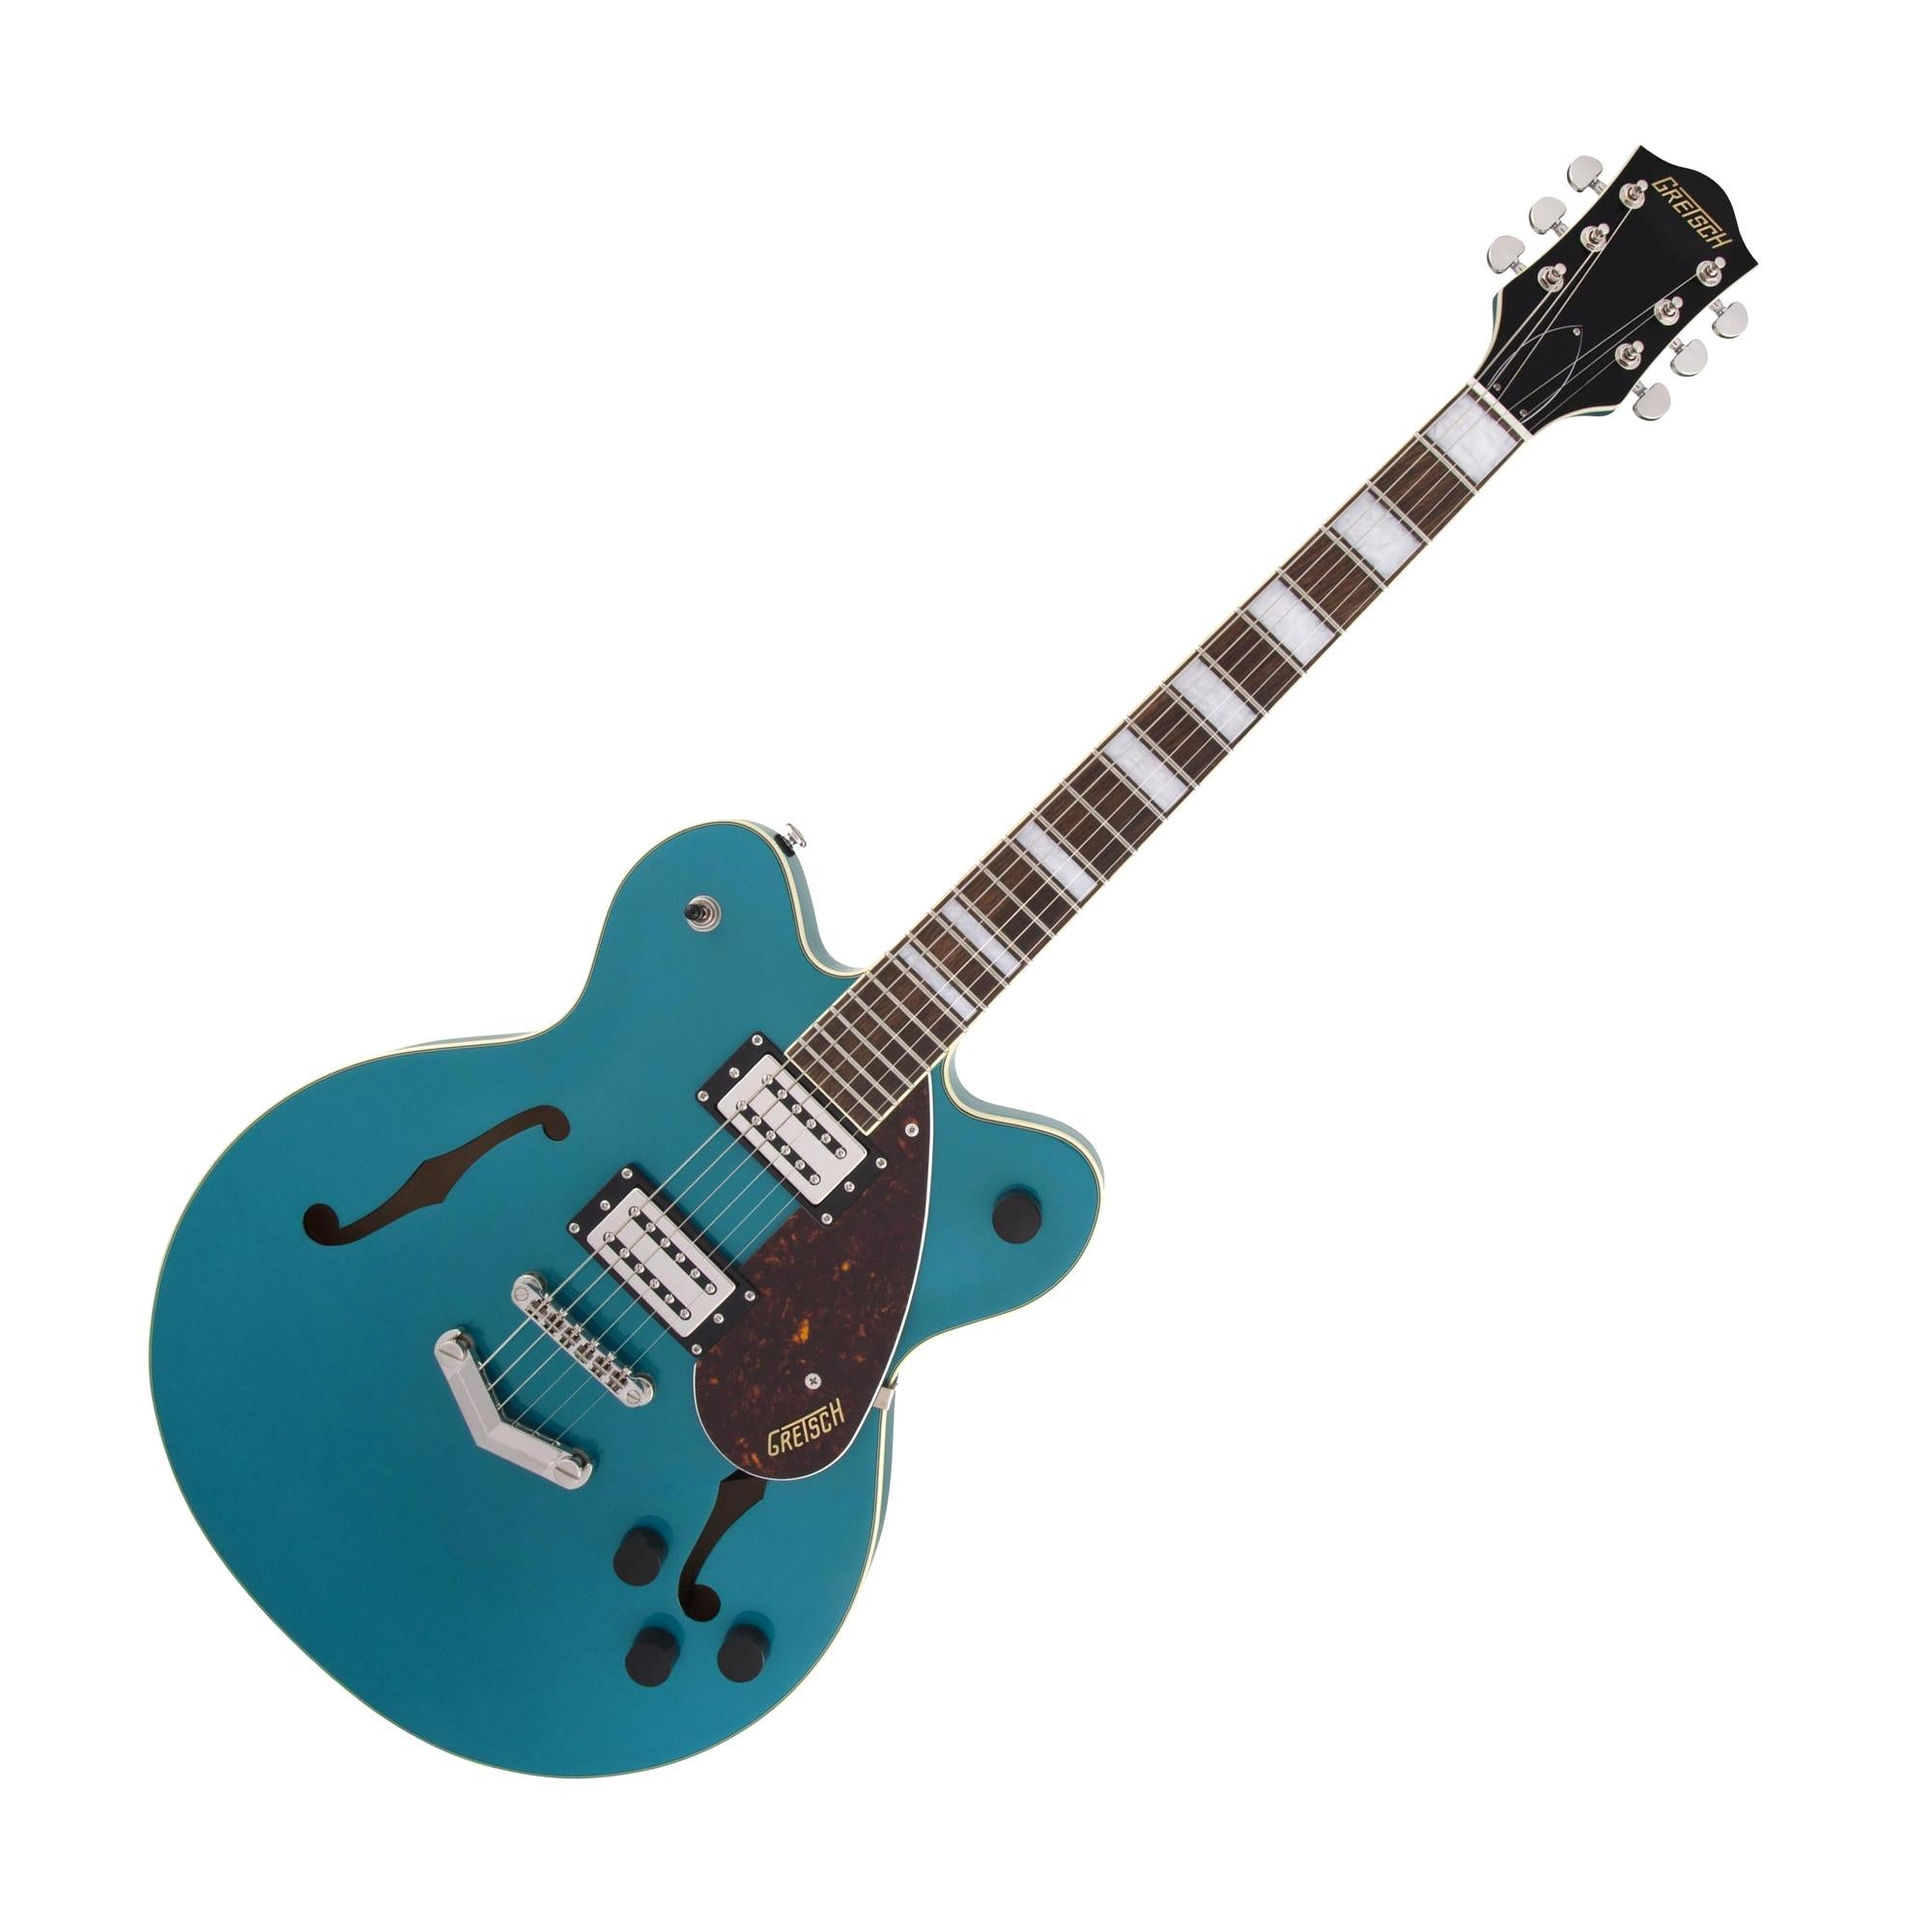 Gretsch G2622 Steamliner Center Block Double Cut Away Electric Guitar, Ocean Turquoise